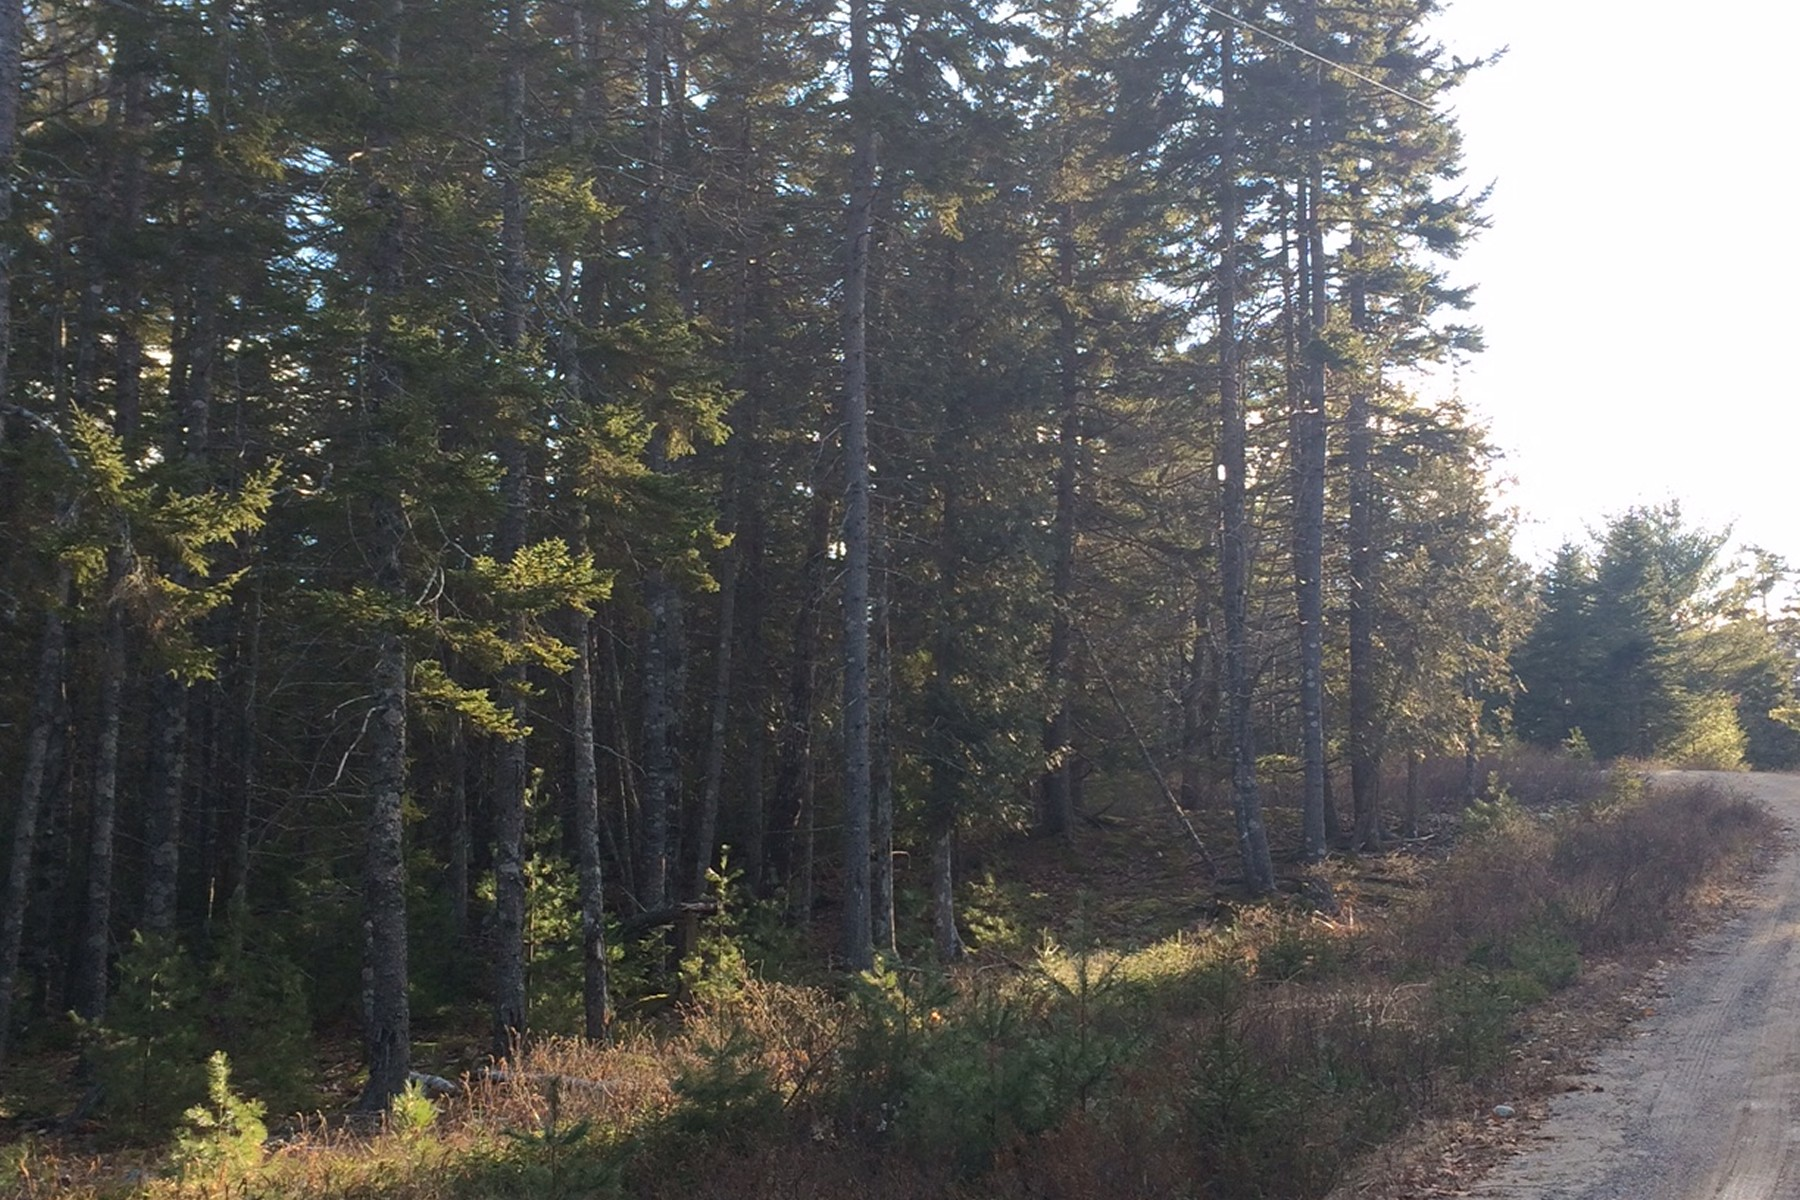 Land for Sale at Woods Road Lot 4, Woods Road Mount Desert, Maine, 04660 United States